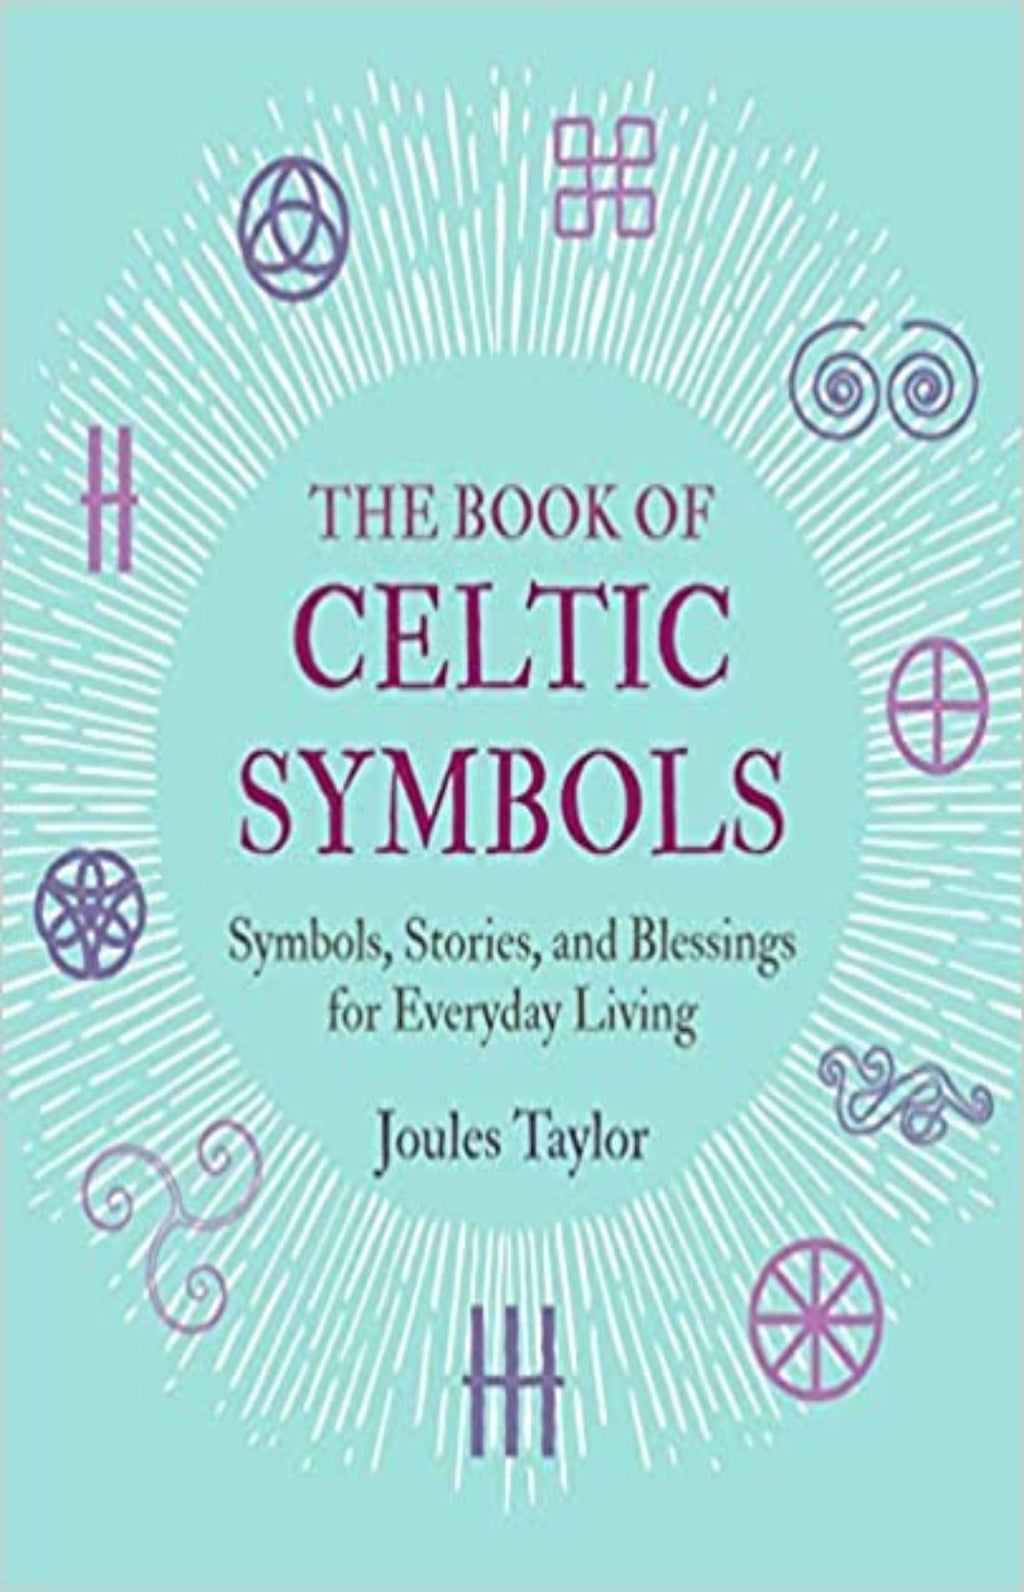 The Book of Celtic Symbols : Symbols, Stories, and Blessings for Everyday Living